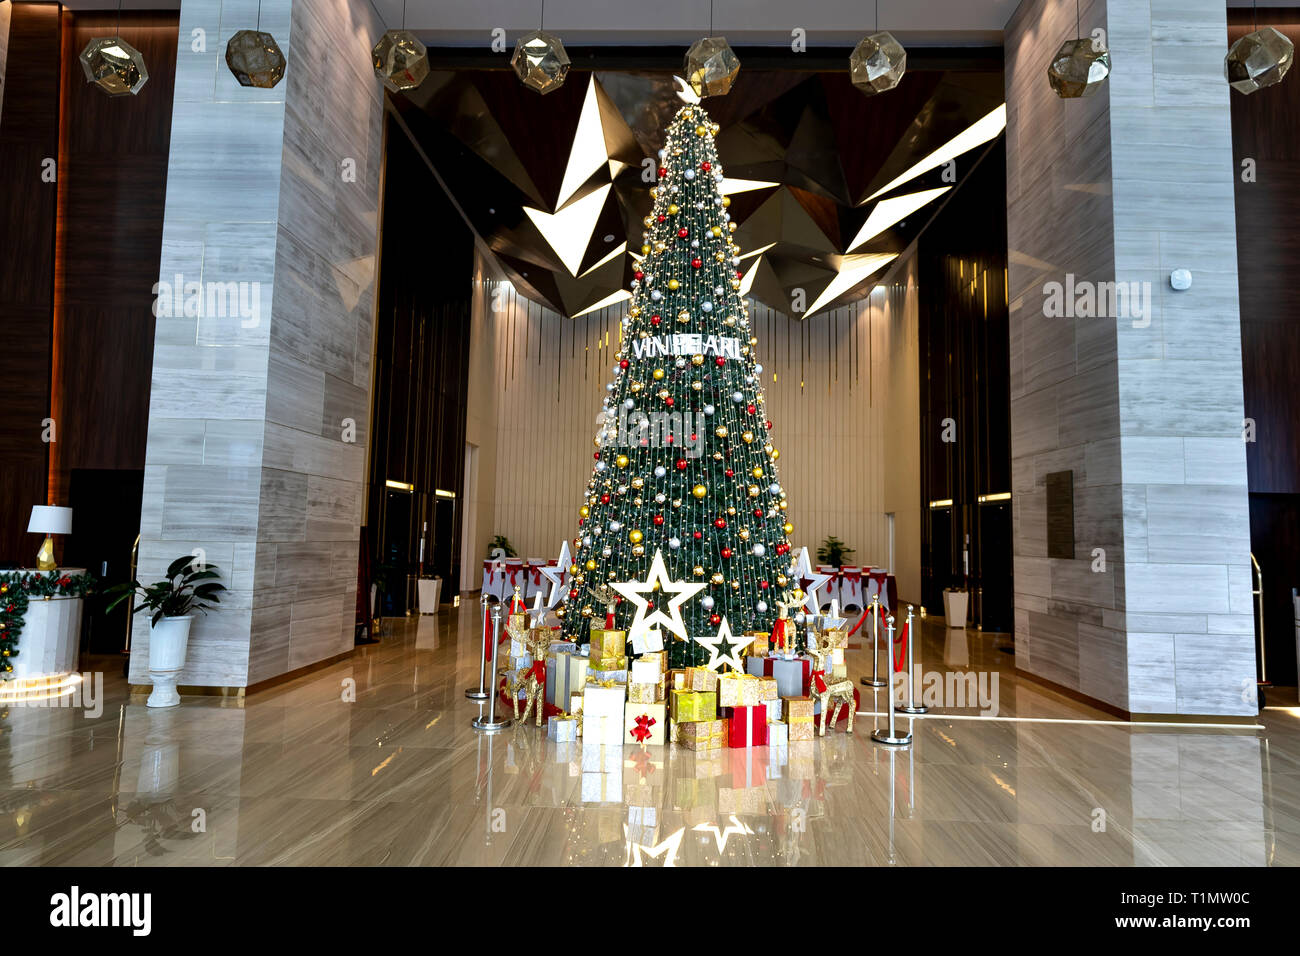 Five-star hotel Vinpearl, Ha Tinh province, Vietnam - December 17, 2018: Big pine tree prepared for Christmas in the reception hall of five-star Vinpe - Stock Image